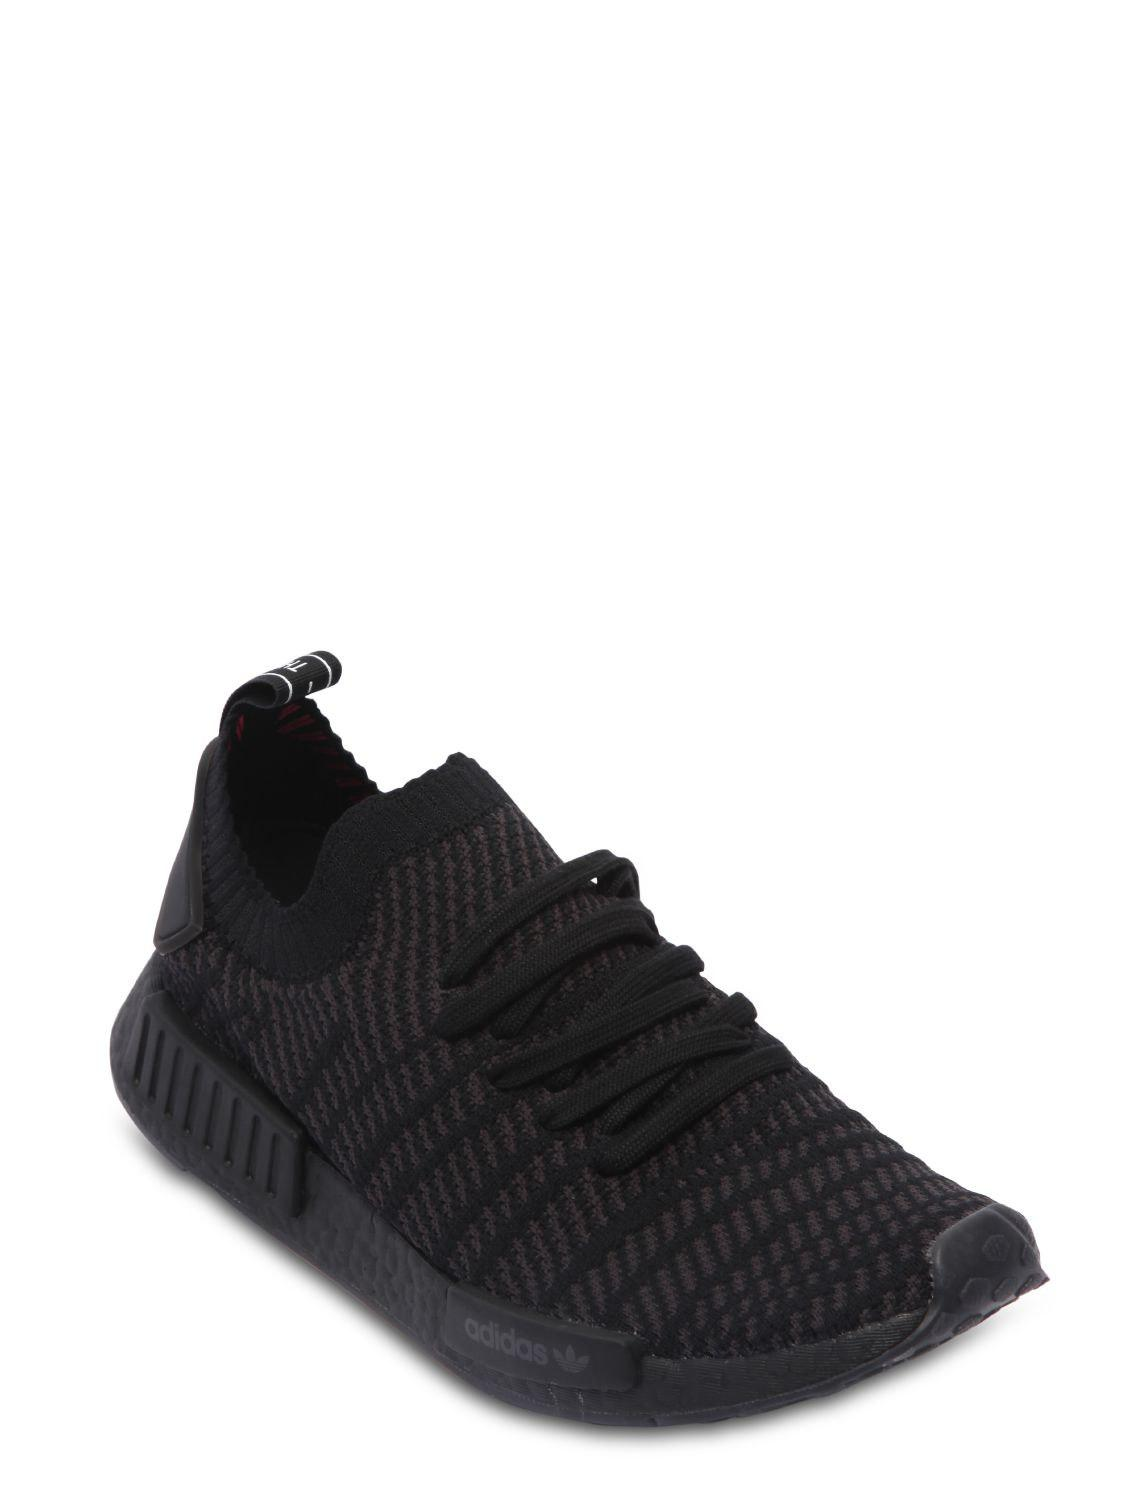 Lyst Adidas Originals Nmd R1 Stlt Primeknit Sneakers In Black For Men